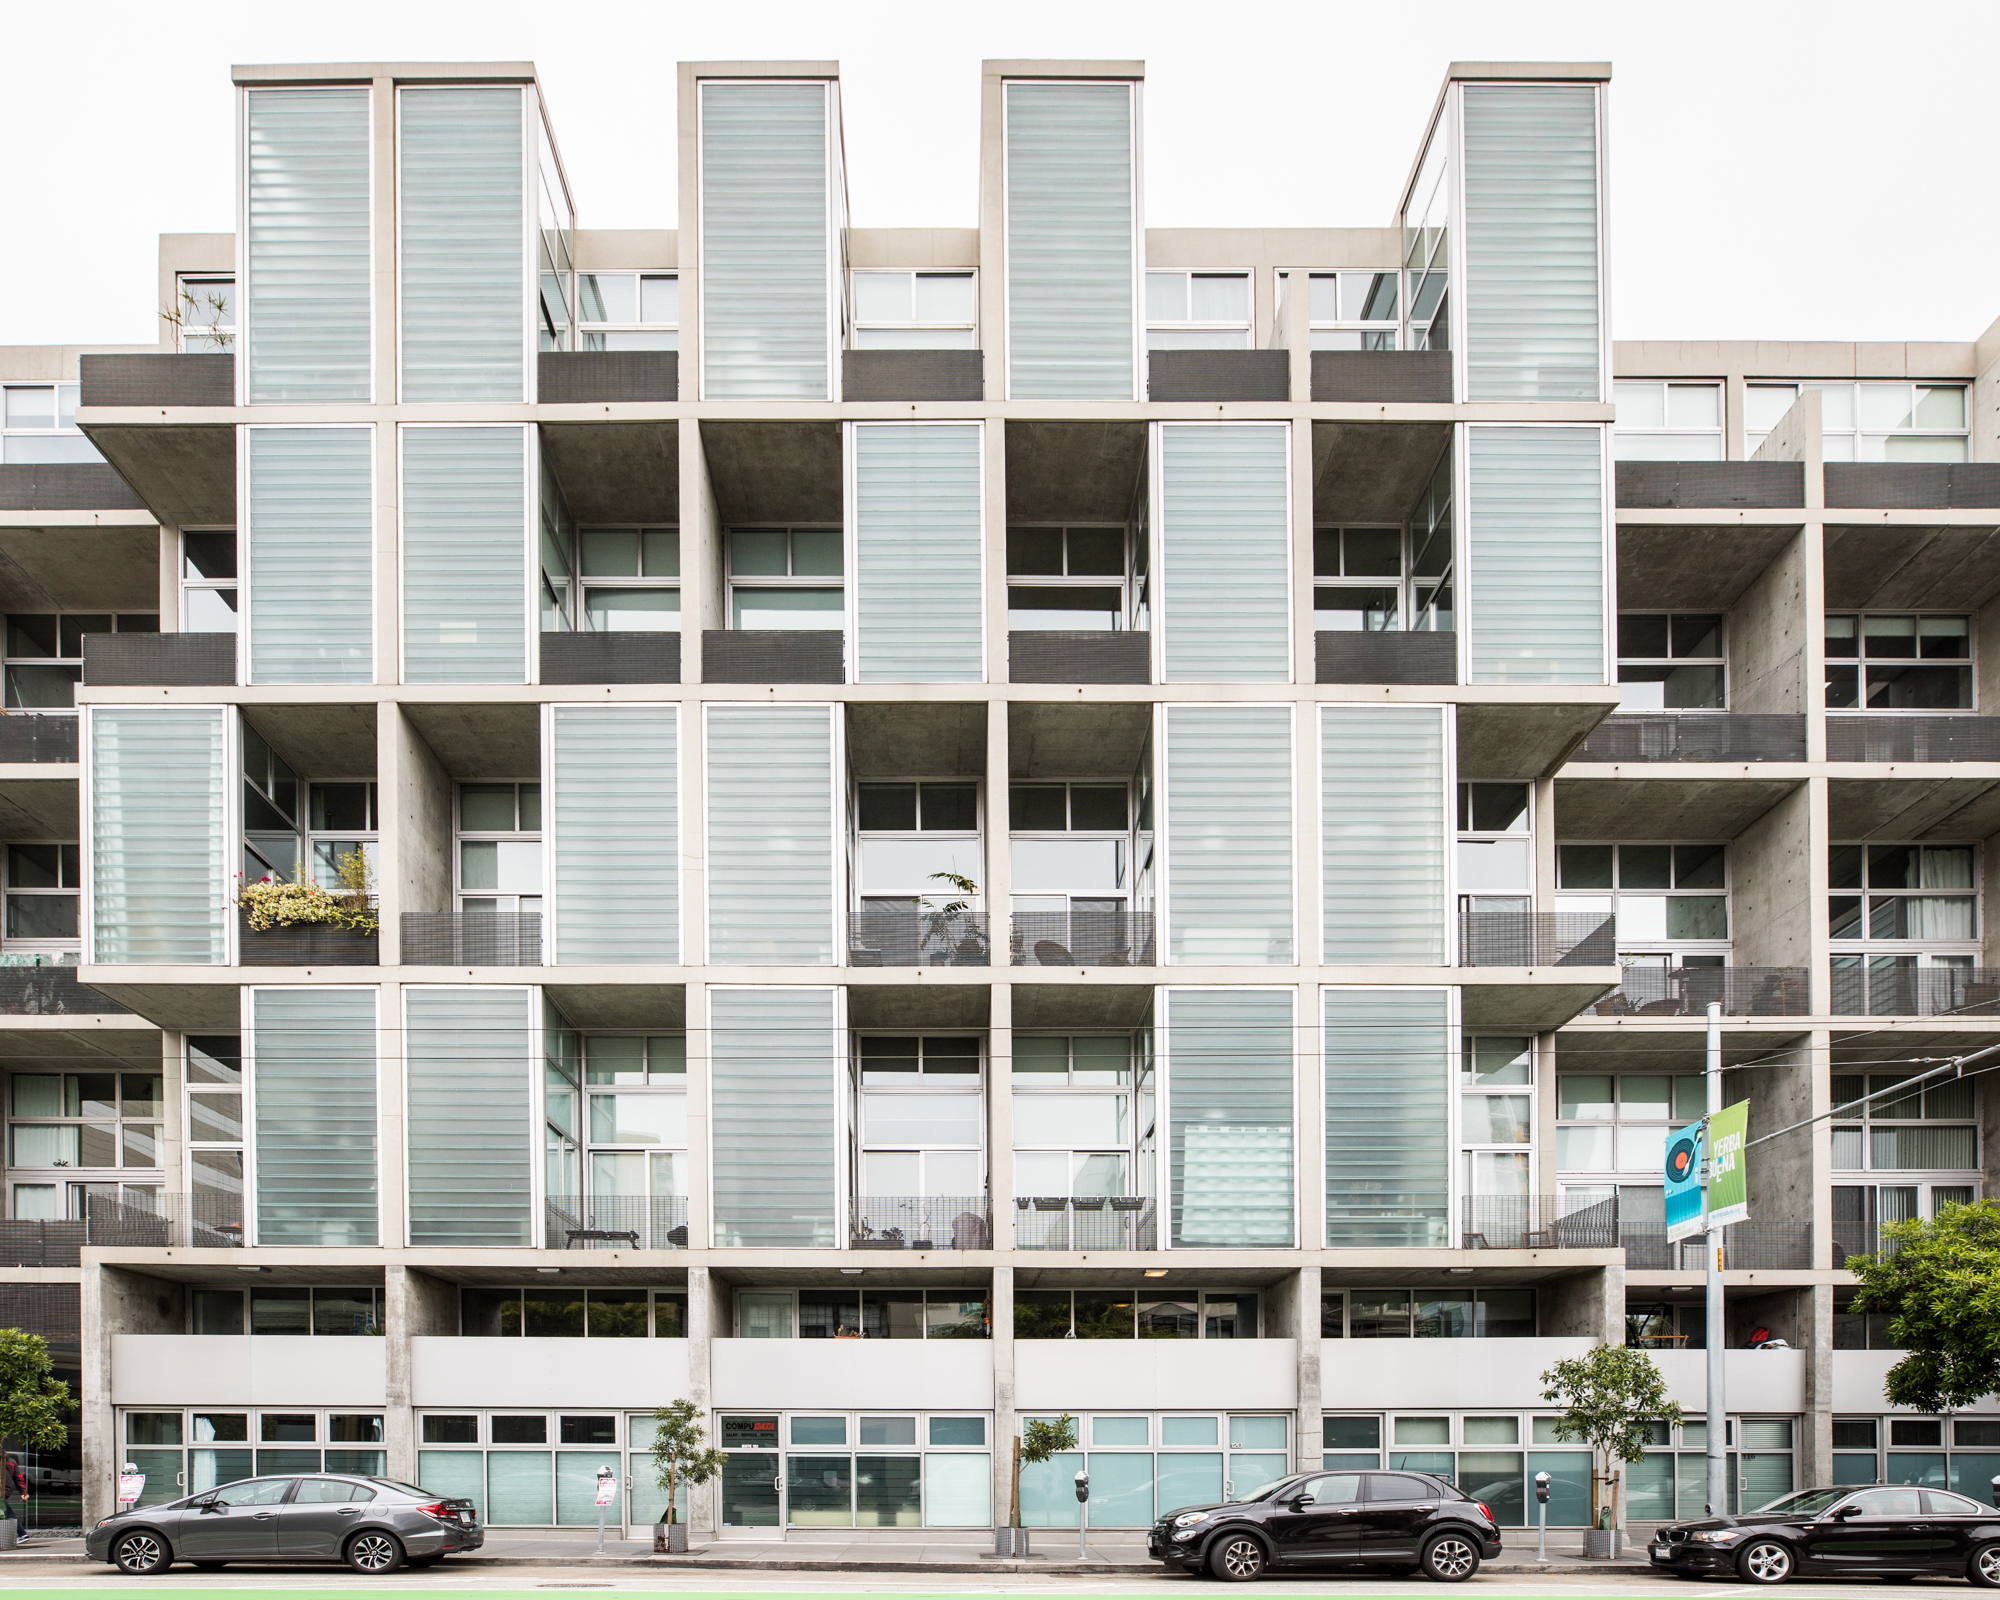 Multiple units on a condo complex with frosted glass blocks galore, and balconies with plants and bikes.